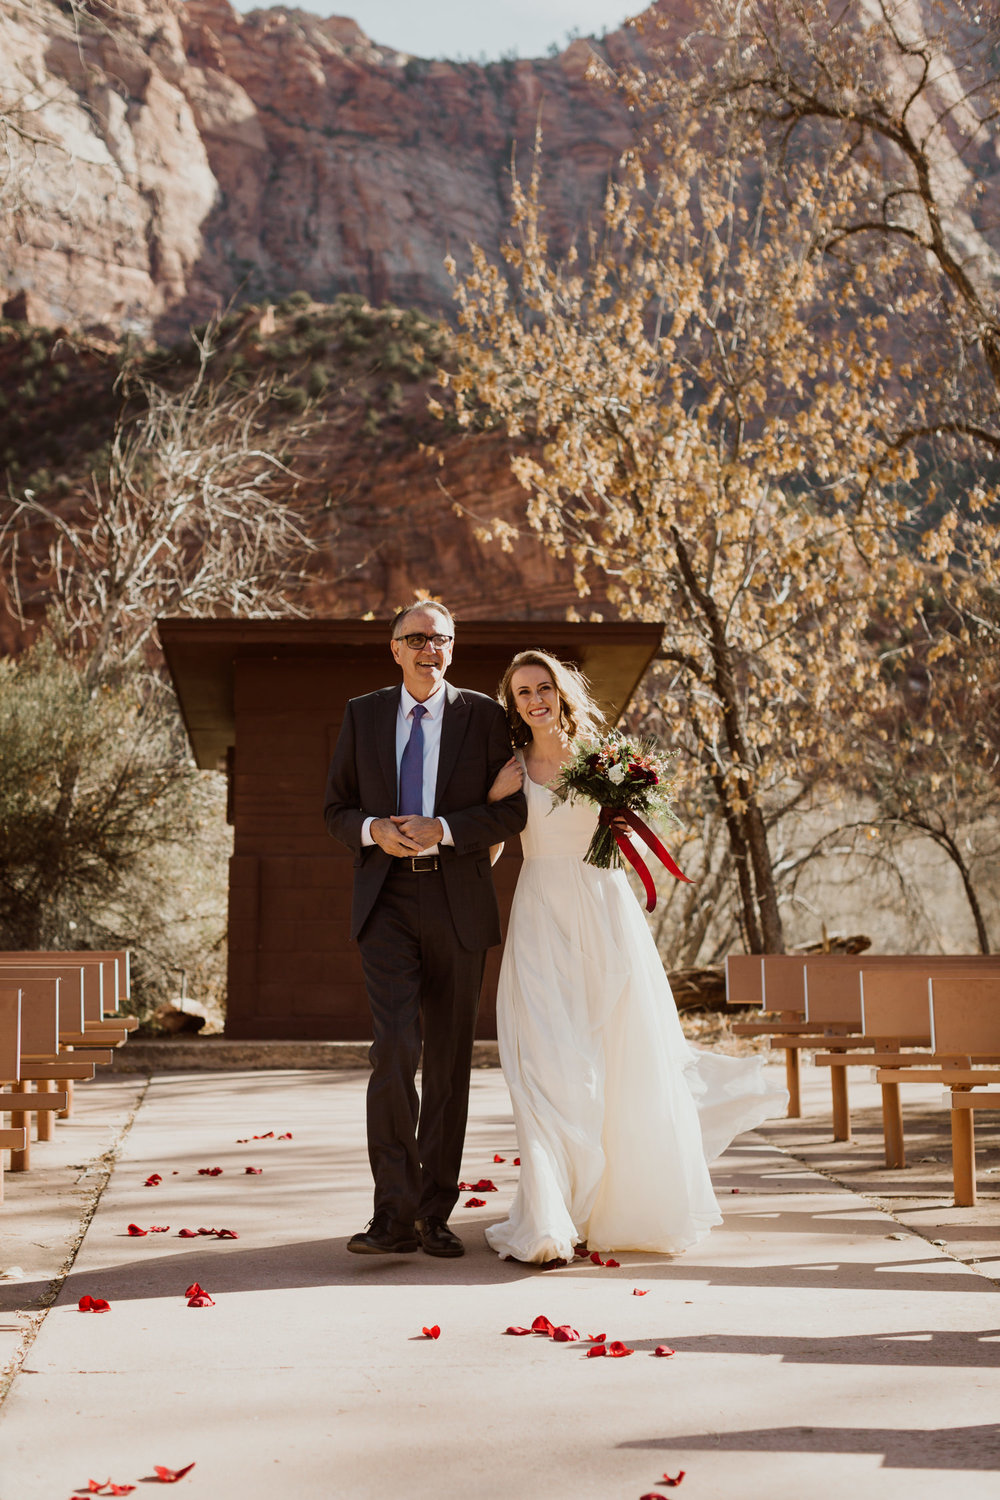 zion-national-park-wedding-74.jpg